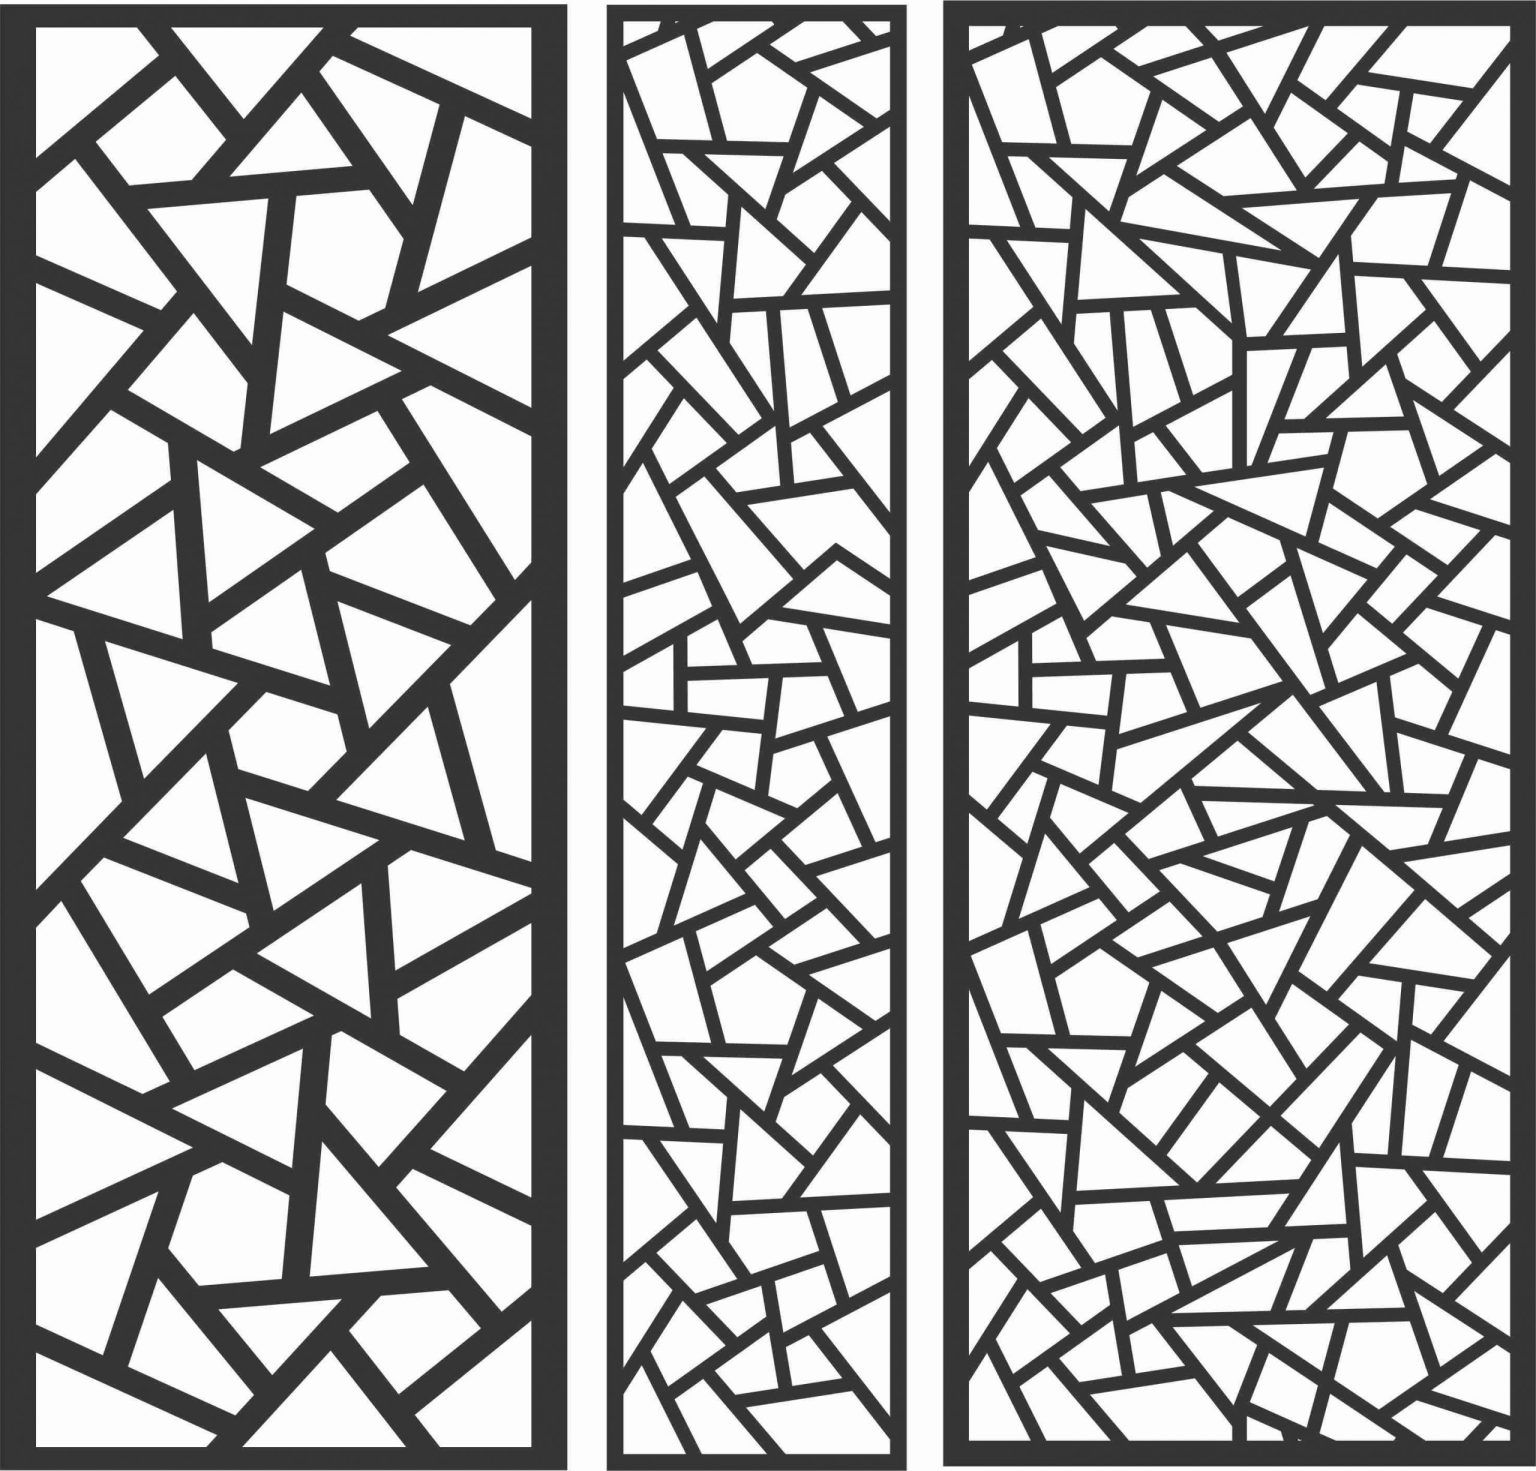 Decorative Screen Patterns For Laser Cutting 80 Free DXF File